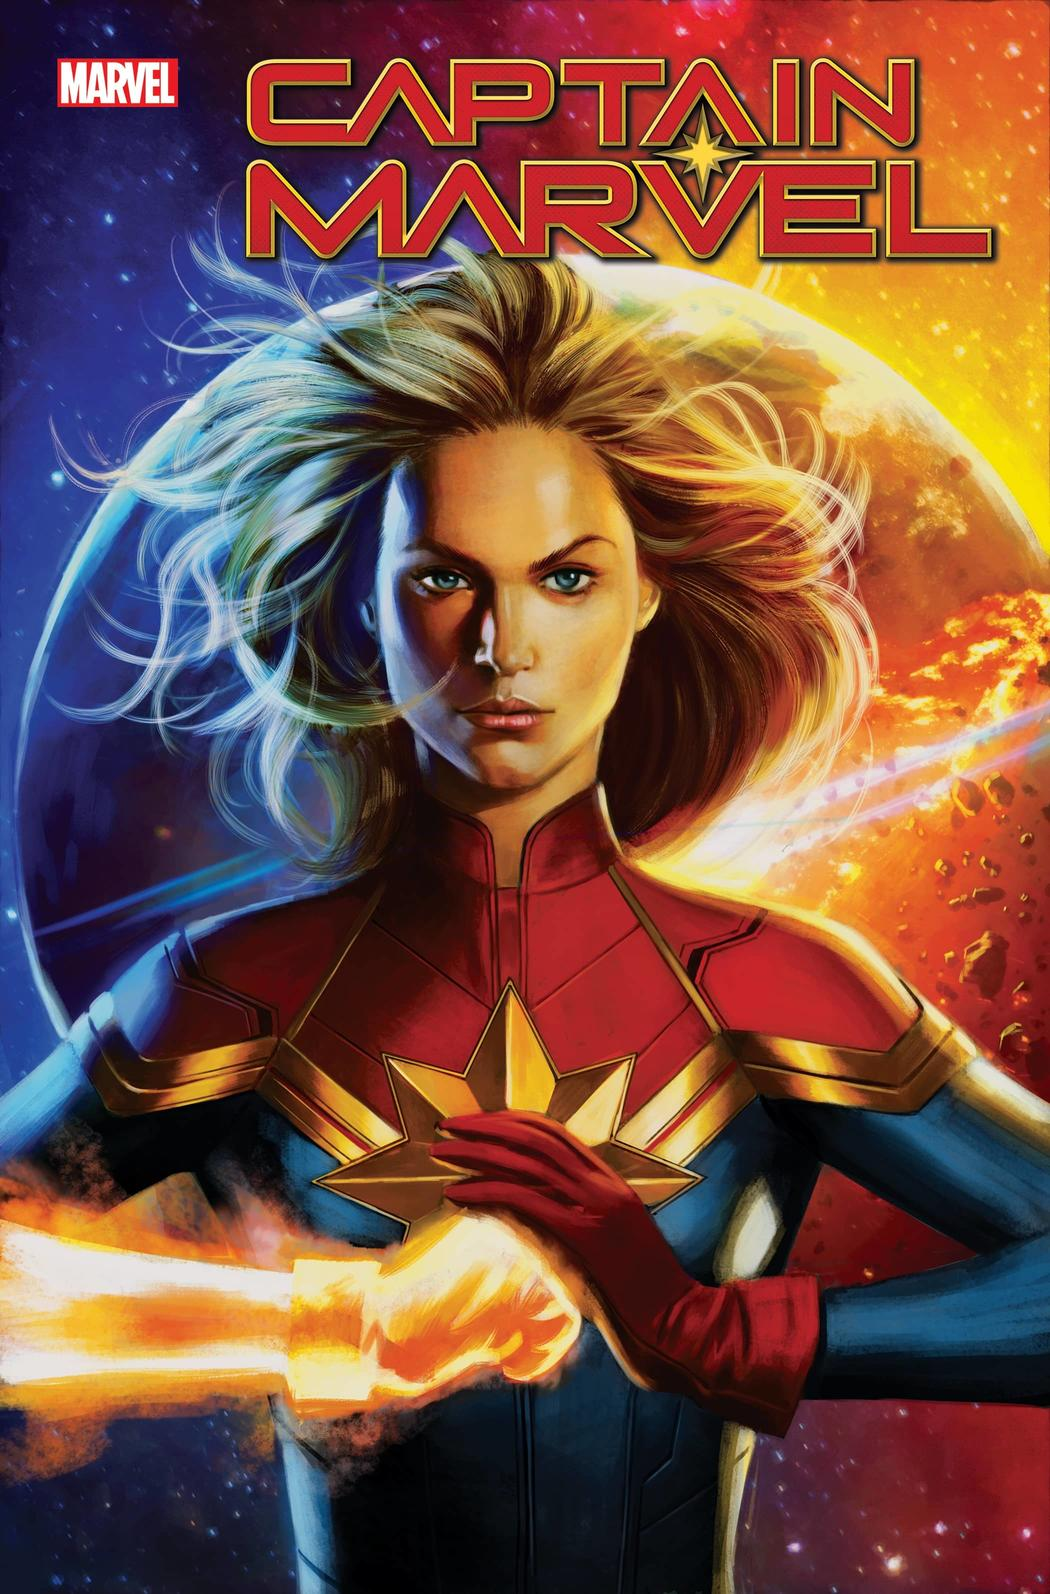 CAPTAIN MARVEL #22 WRITTEN BY KELLY THOMPSON, ART BY LEE GARBETT, COVER BY JORGE MOLINA